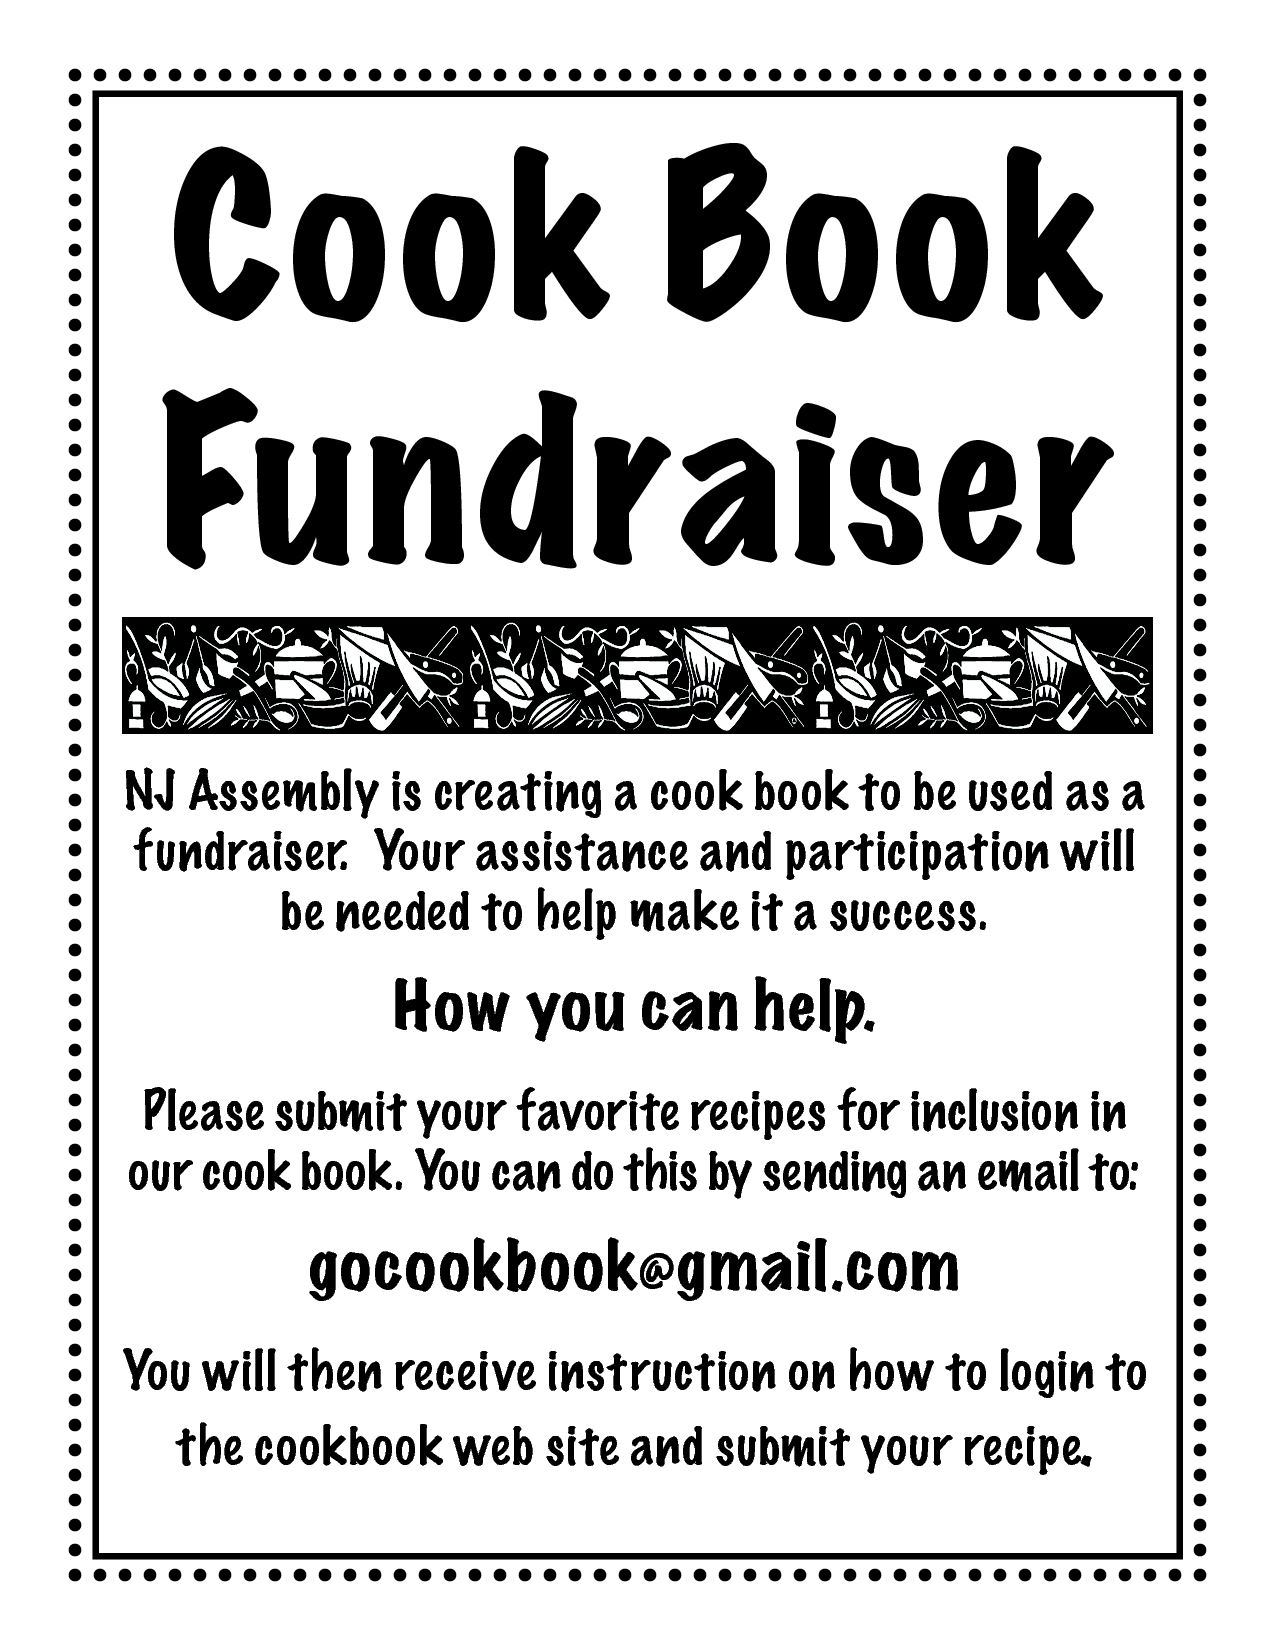 cookbook fundraiser recipe submission flyer | scope of work template ...